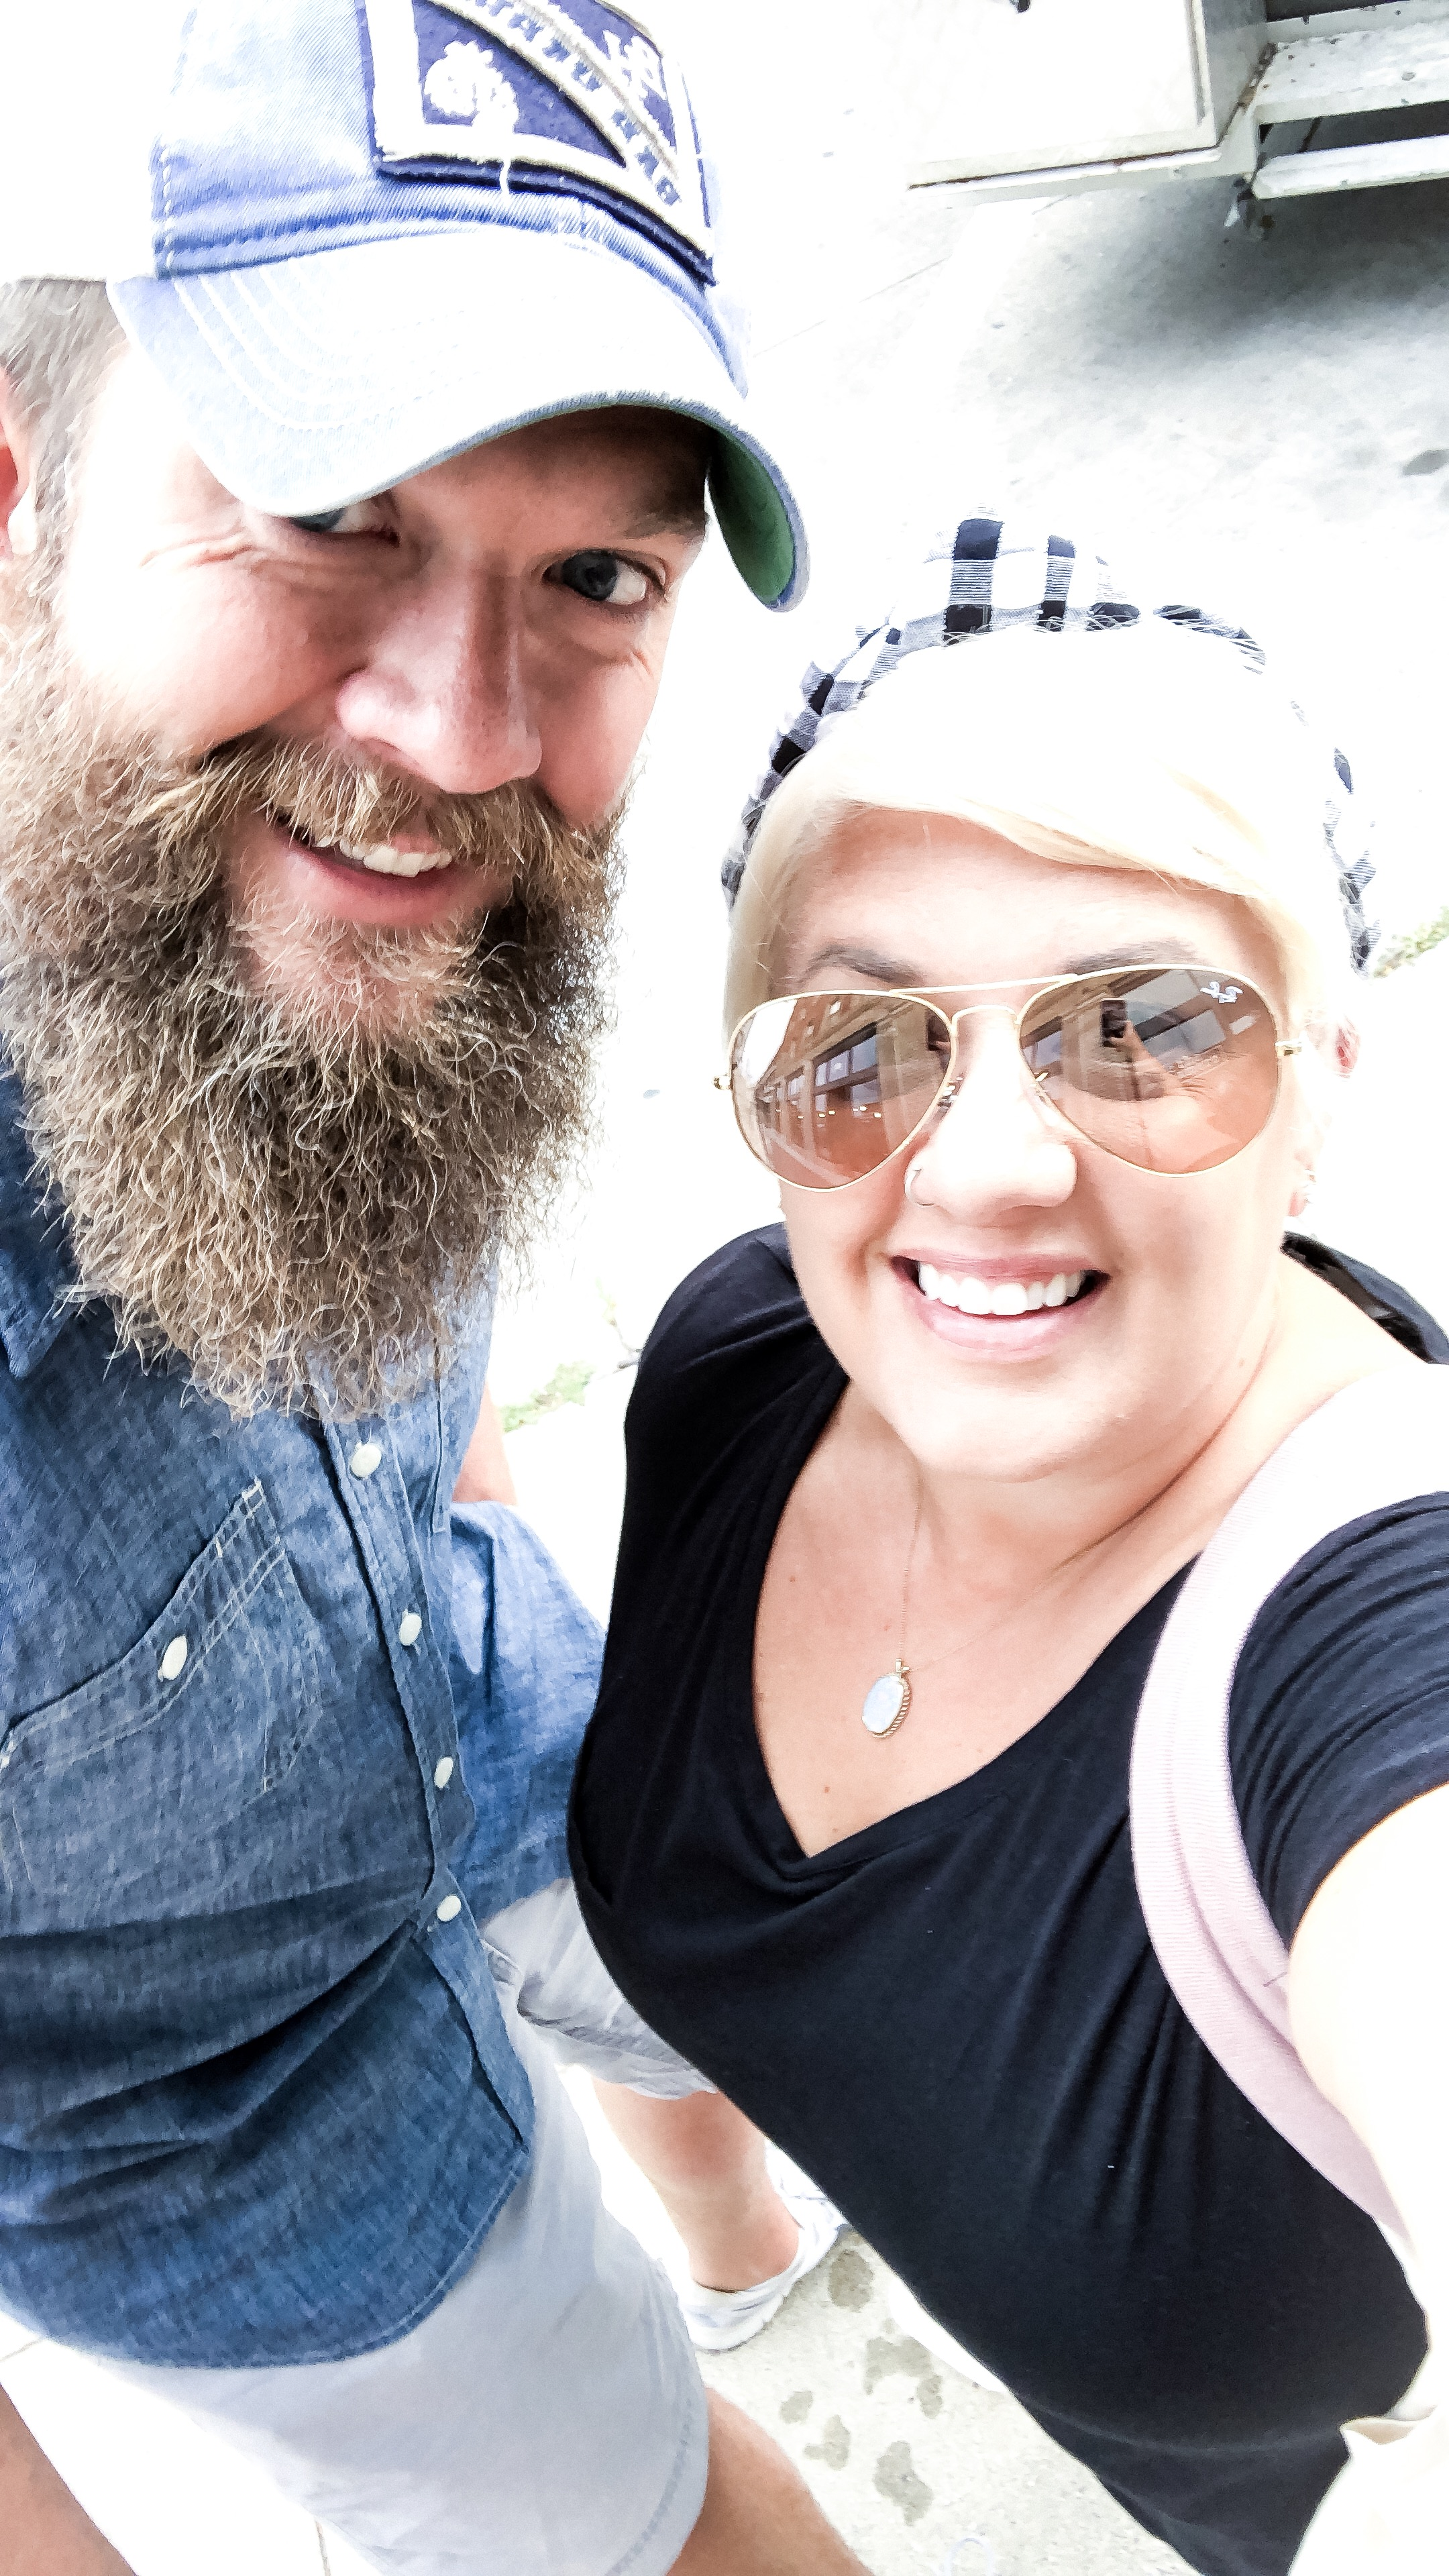 We finally got the chance to visit the farmers market in Ames, IA! It is the perfect size for us—we love good food, coffee, and people watching, but also don't enjoy huge crowds.